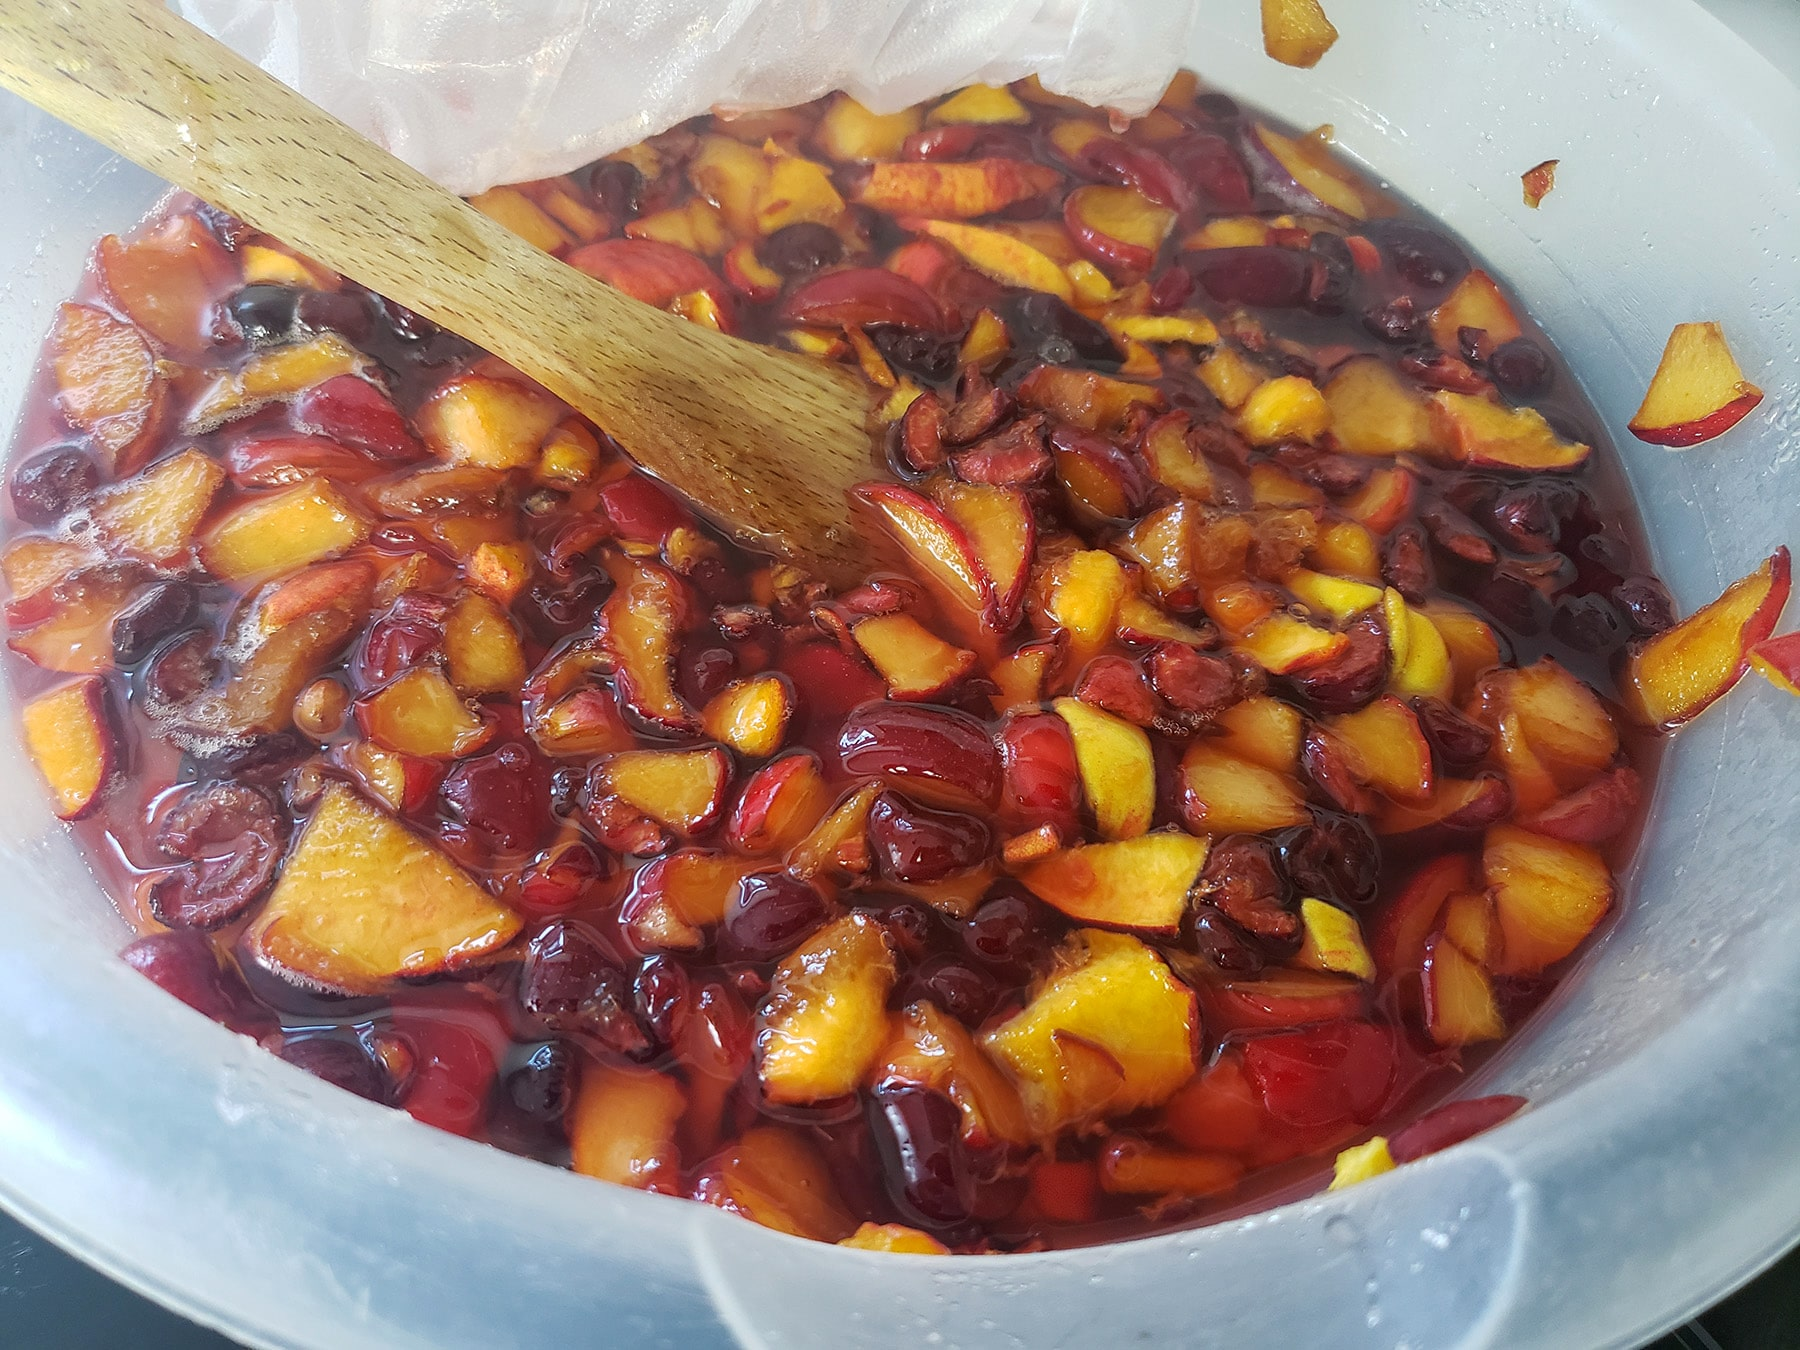 A big bowl of chopped stone fruit, macerating in a sugar syrup.